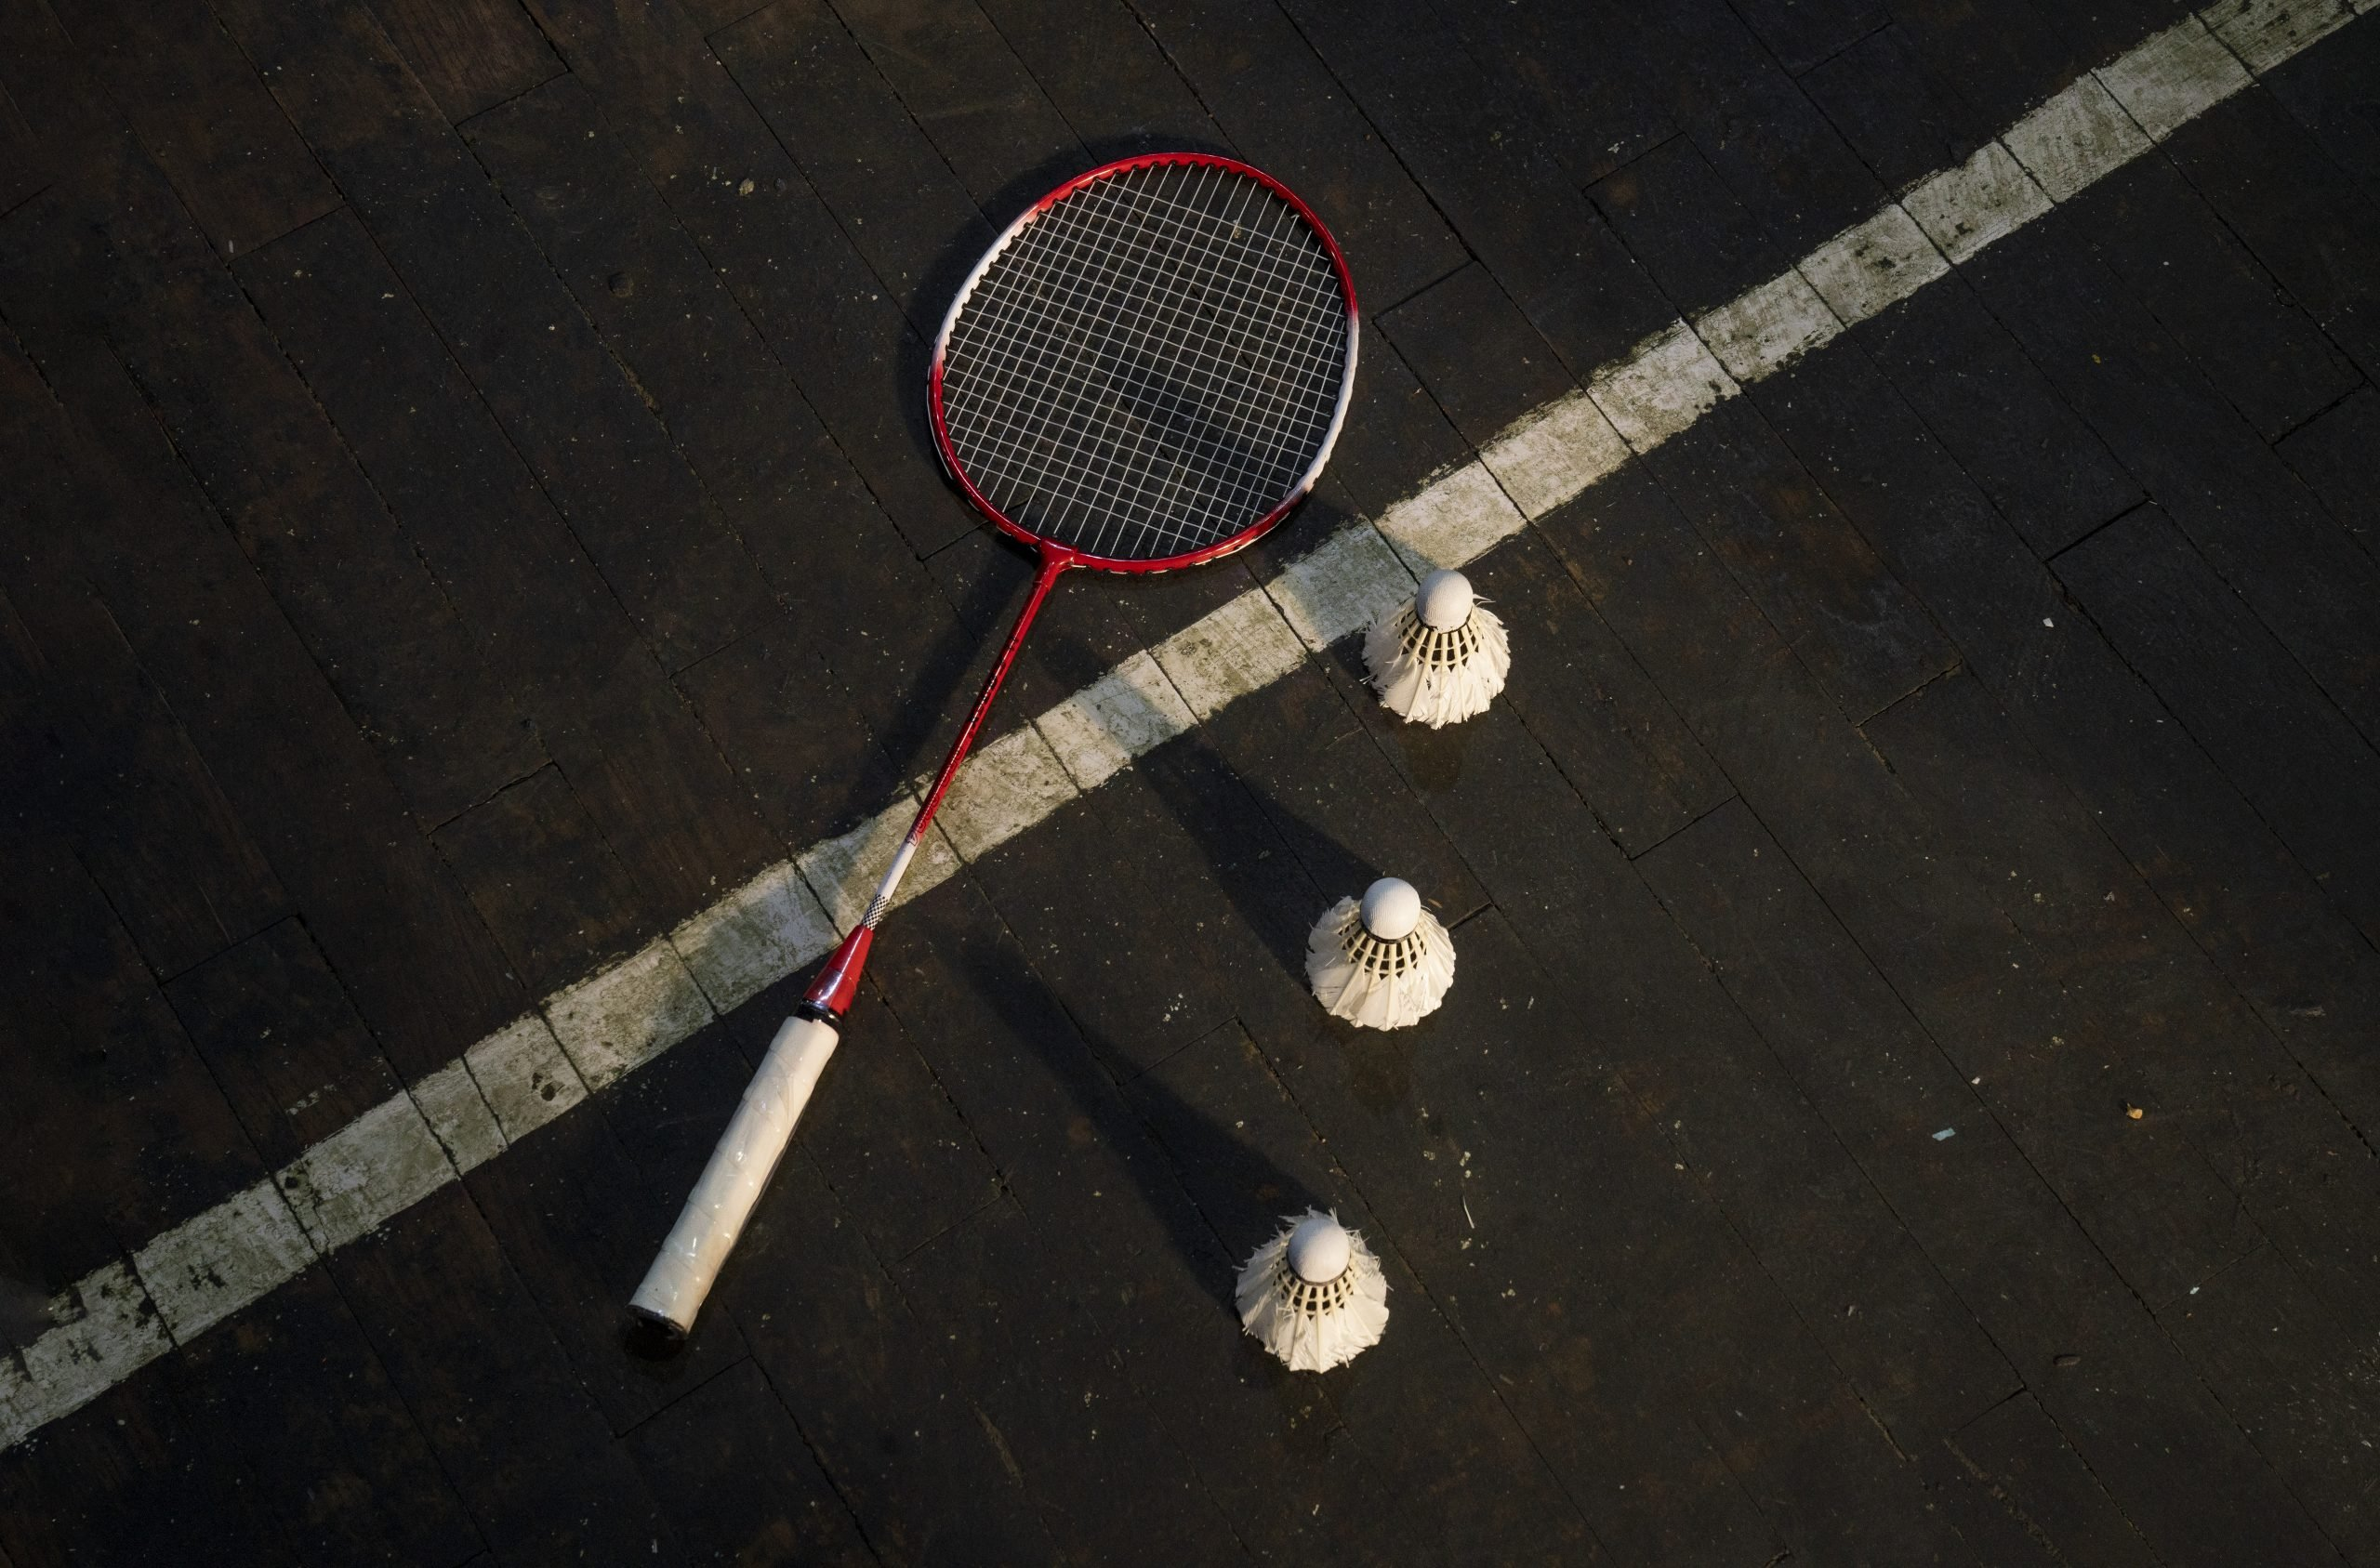 Badminton racket and shuttlecock on the ground